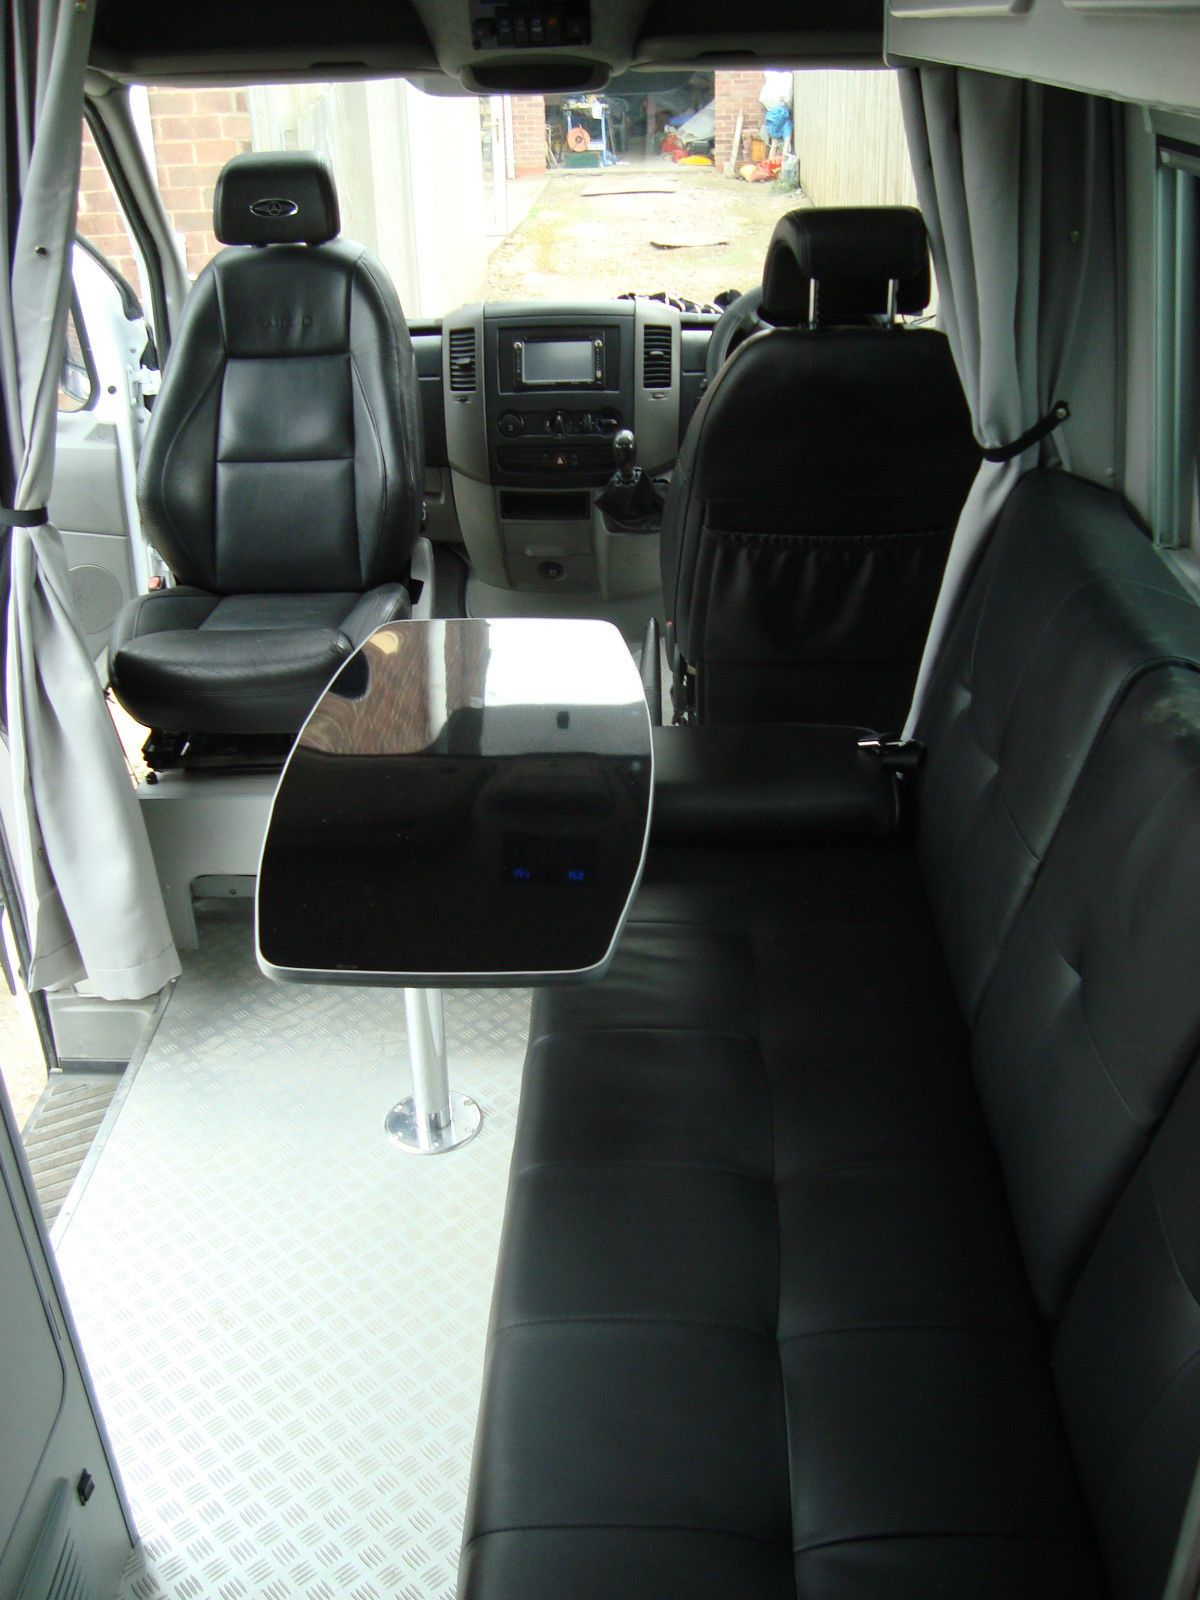 Mercedes Sprinter Race Van Camper Motorhome New Conversion